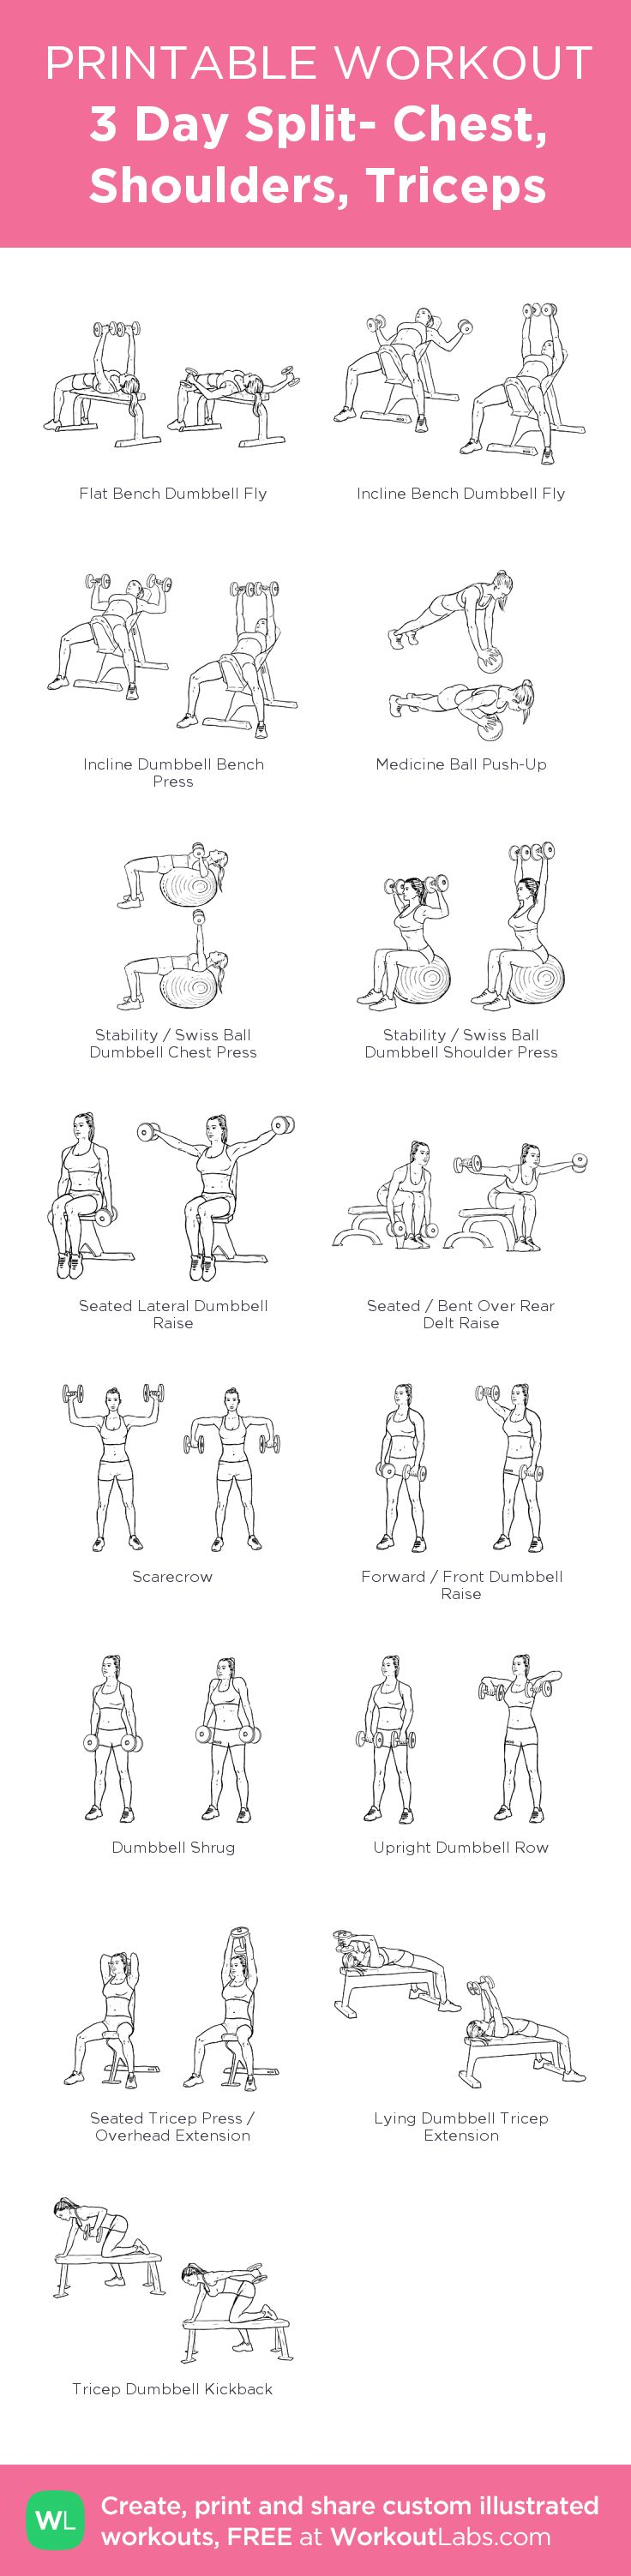 3 Day Split- Chest, Shoulders, Triceps: my visual workout created at WorkoutLabs.com • Click through to customize and download as a FREE PDF! #customworkout